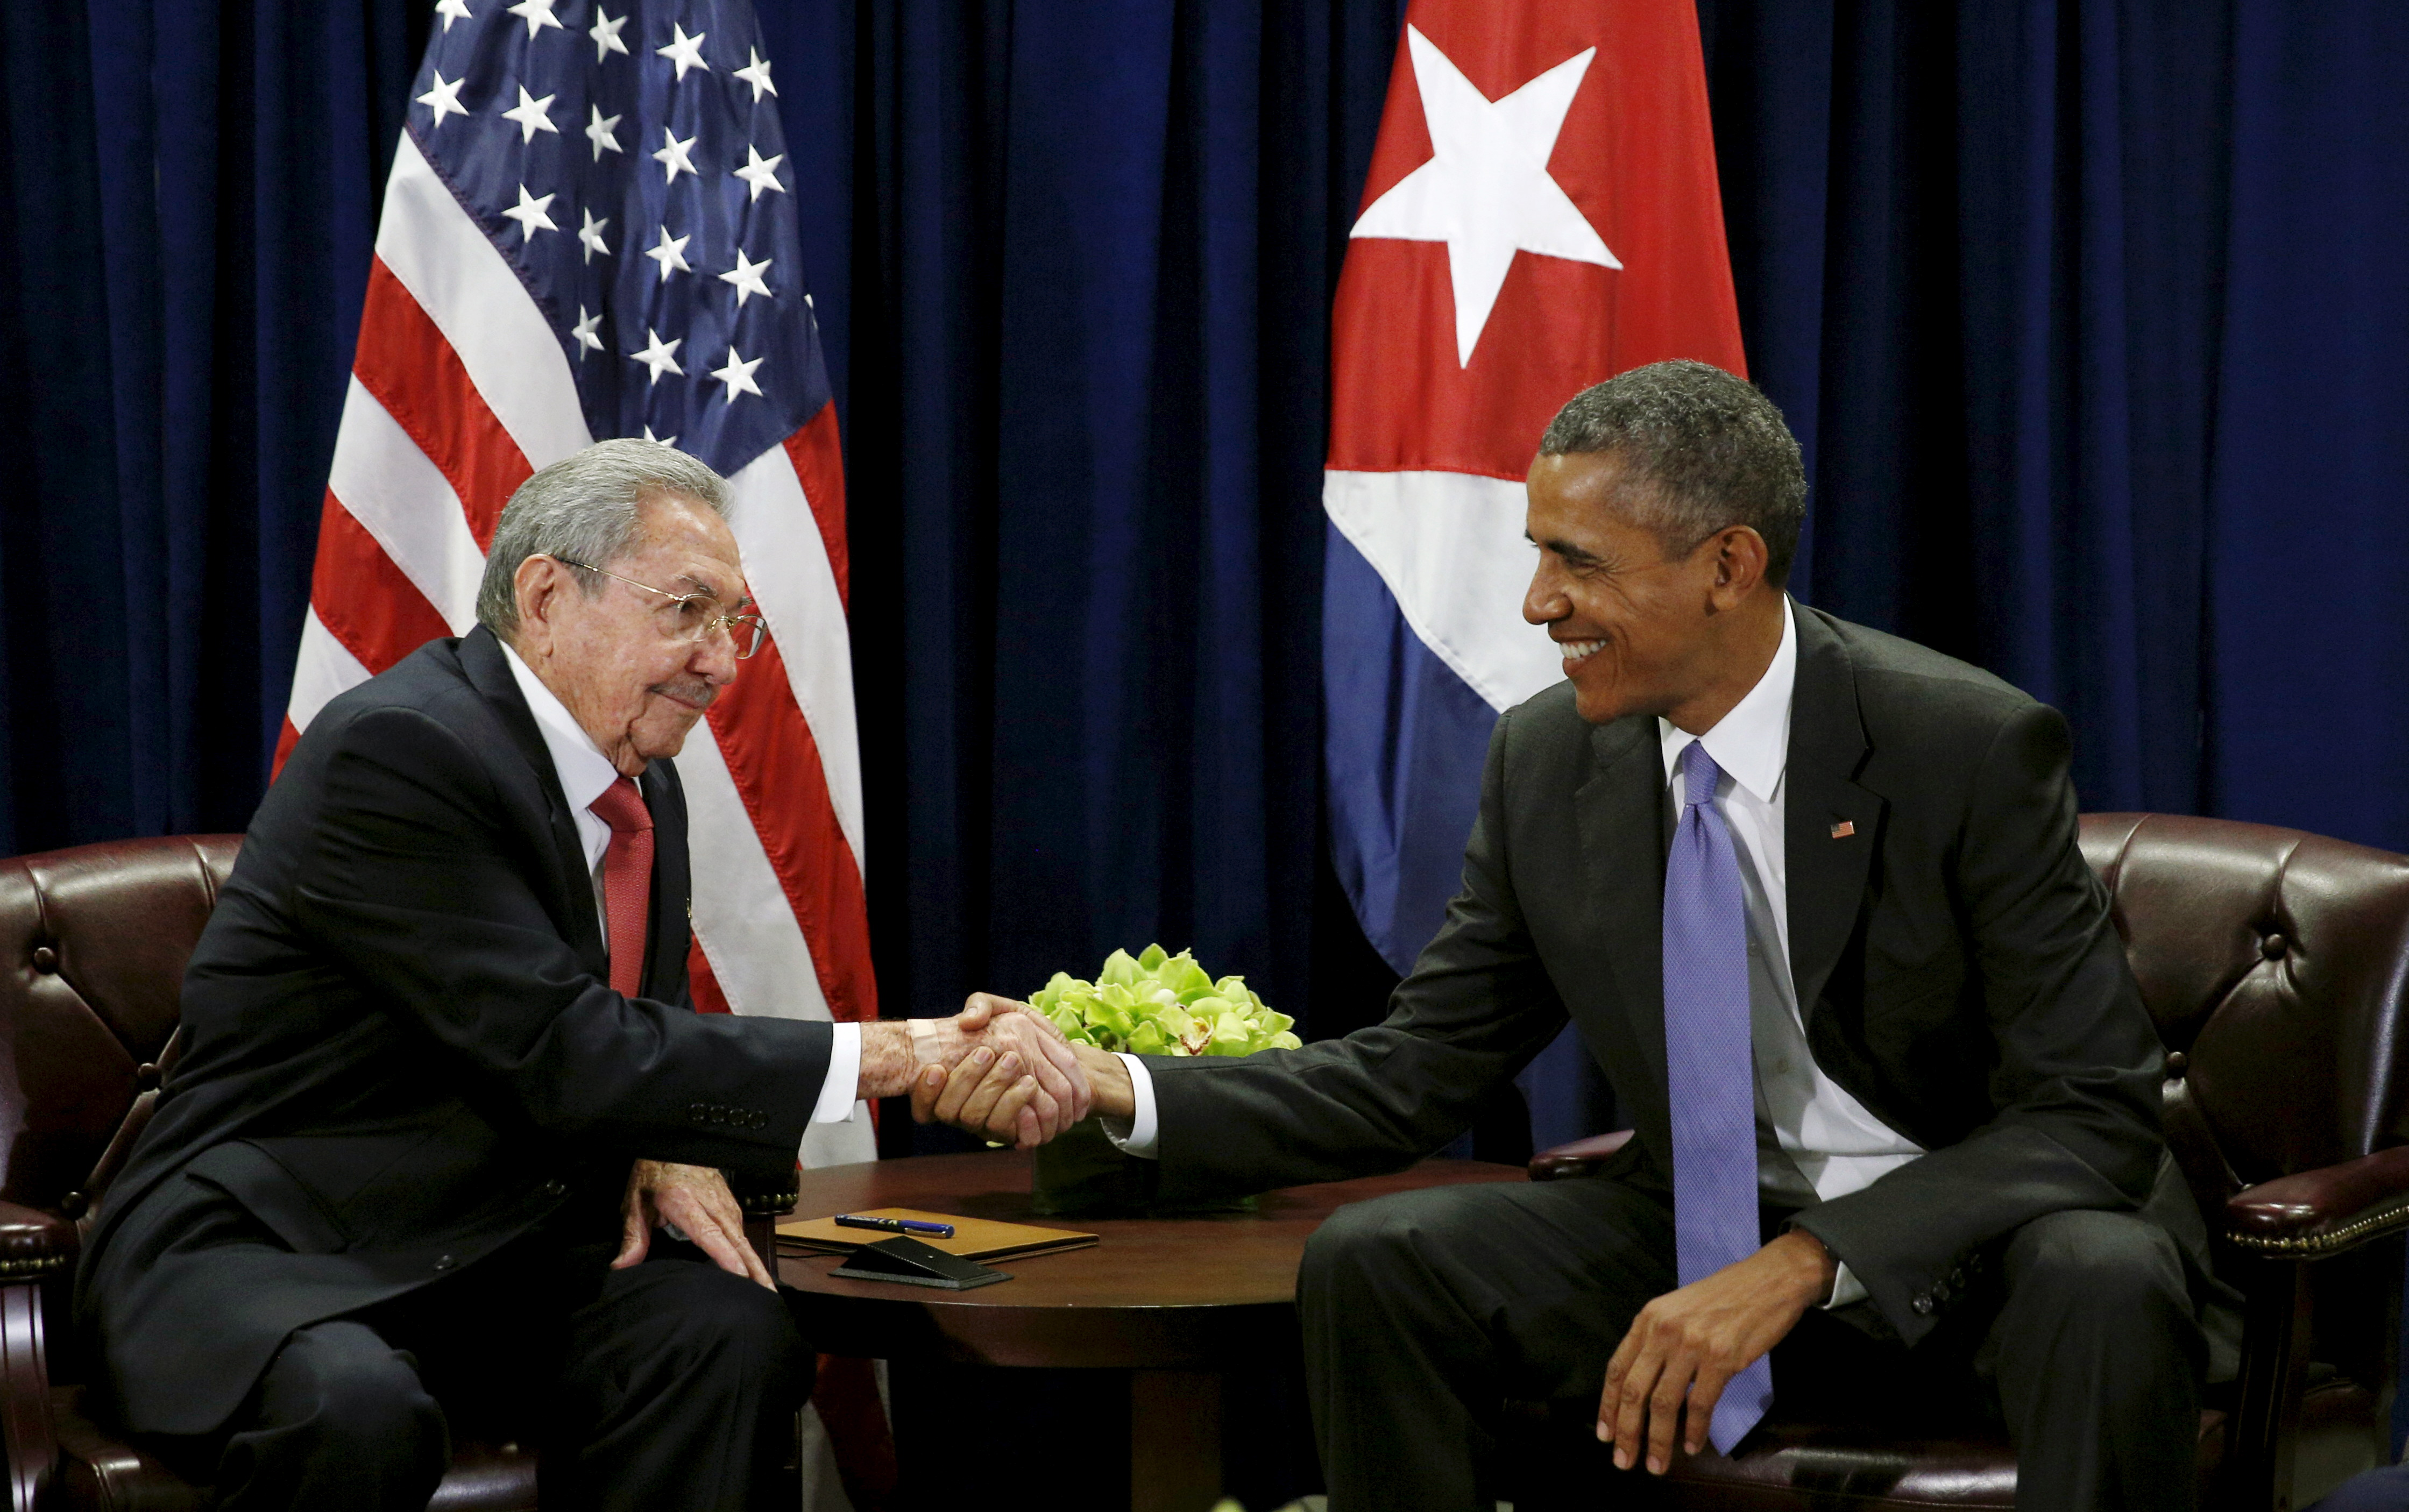 U.S. President Barack Obama (R) and Cuban President Raul Castro shake hands at the start of their meeting at the United Nations General Assembly in New York September 29, 2015.